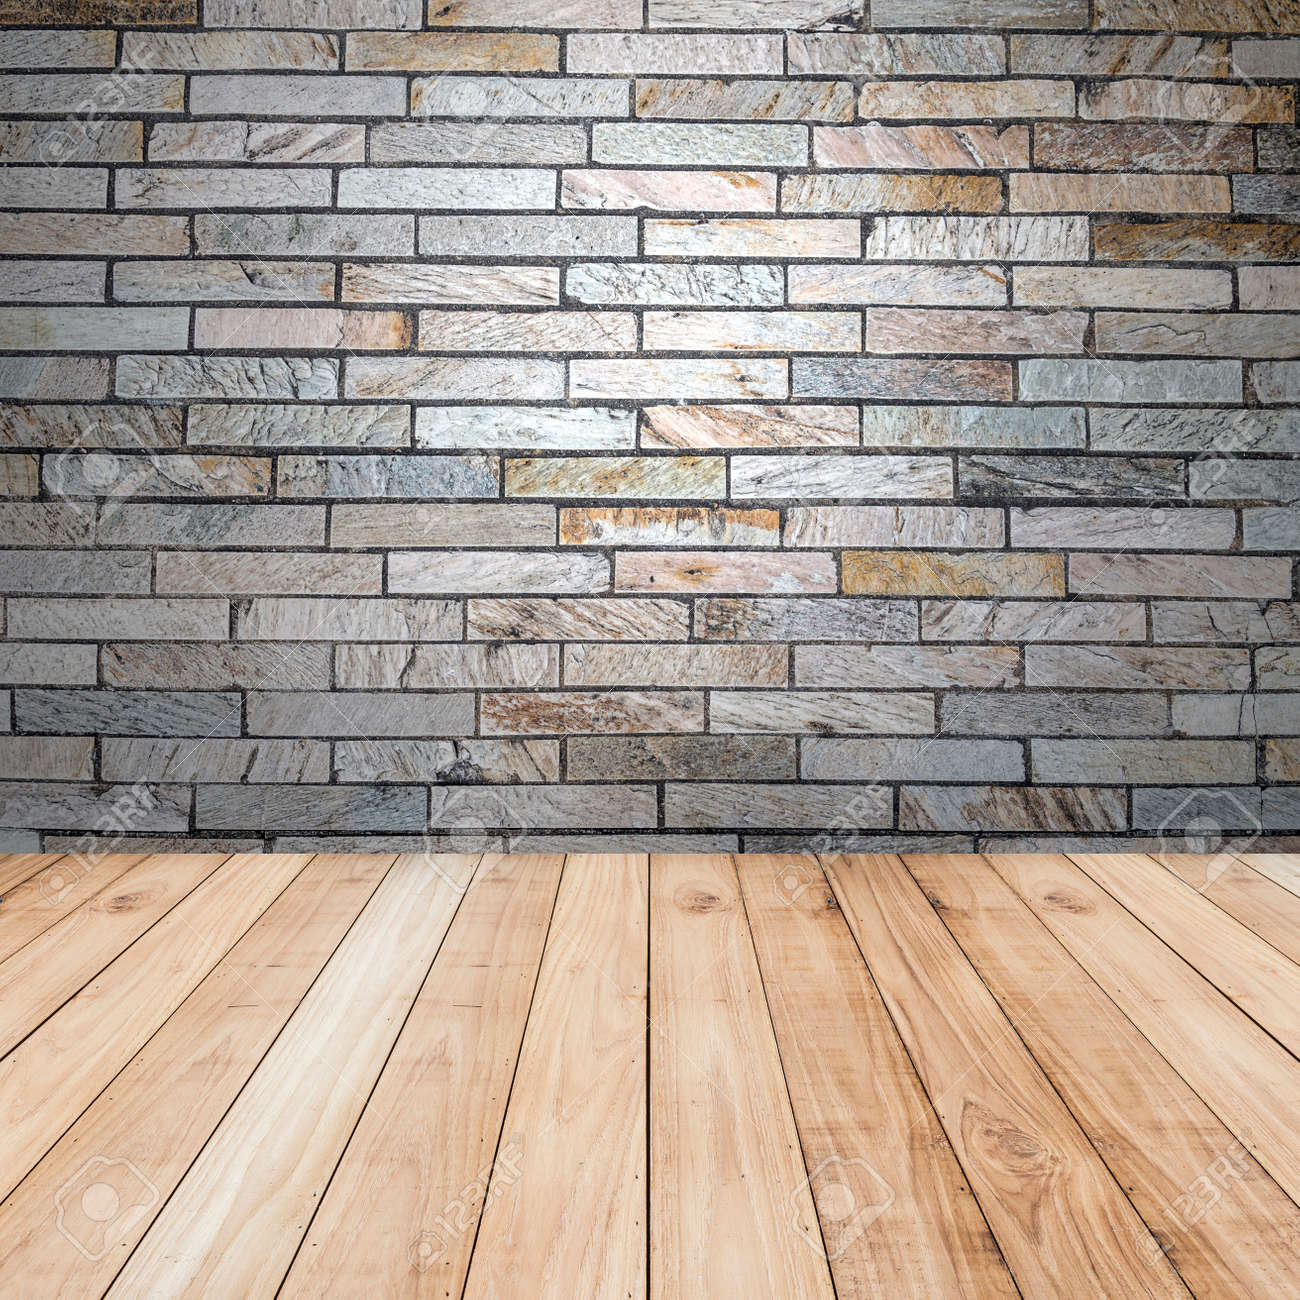 Big Brown Floors Wood Planks Texture Background Wallpaper Stand